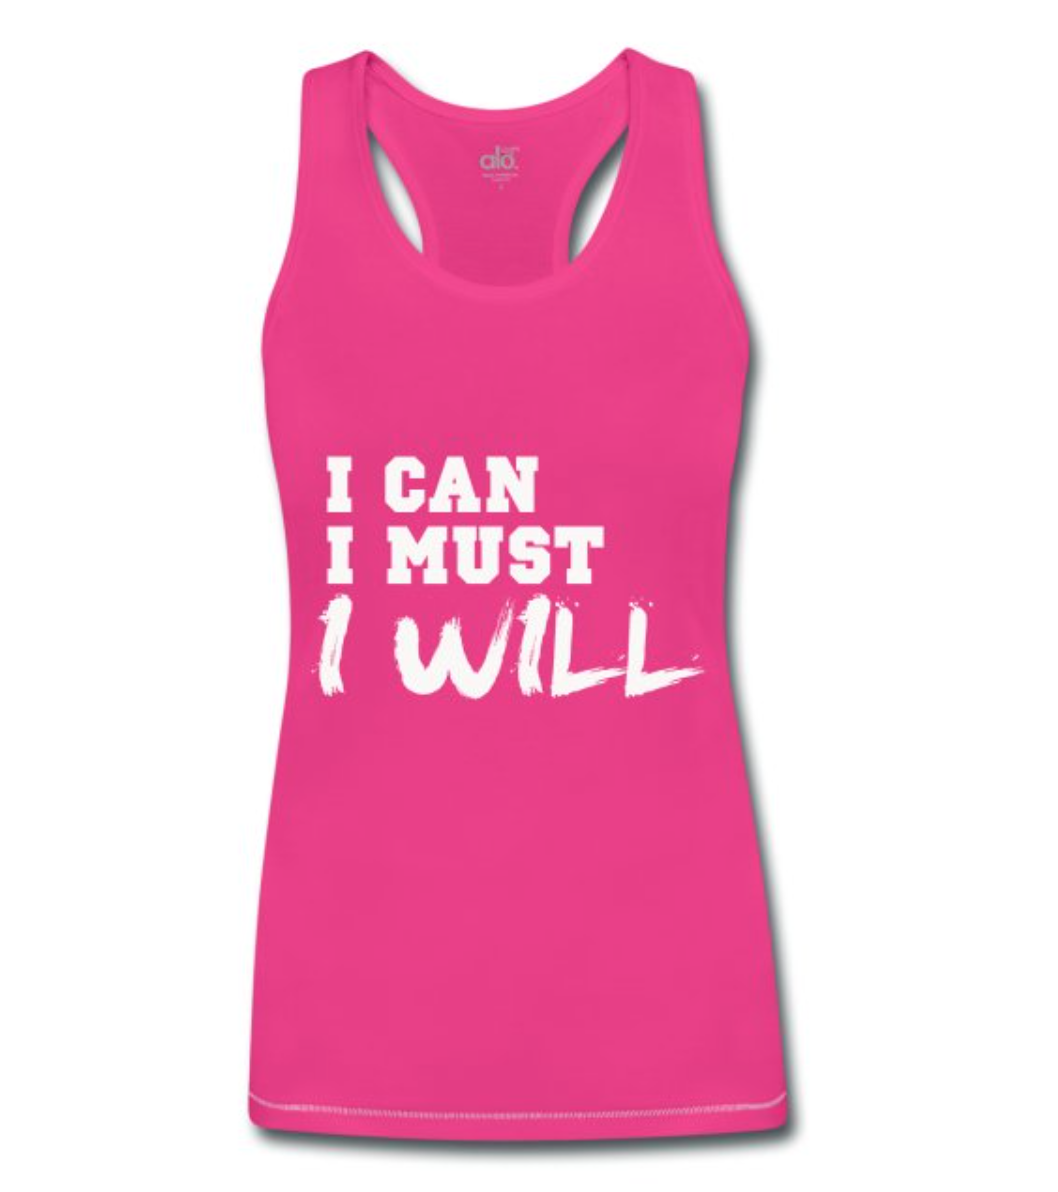 Women's Bamboo Performance Tank $25.49